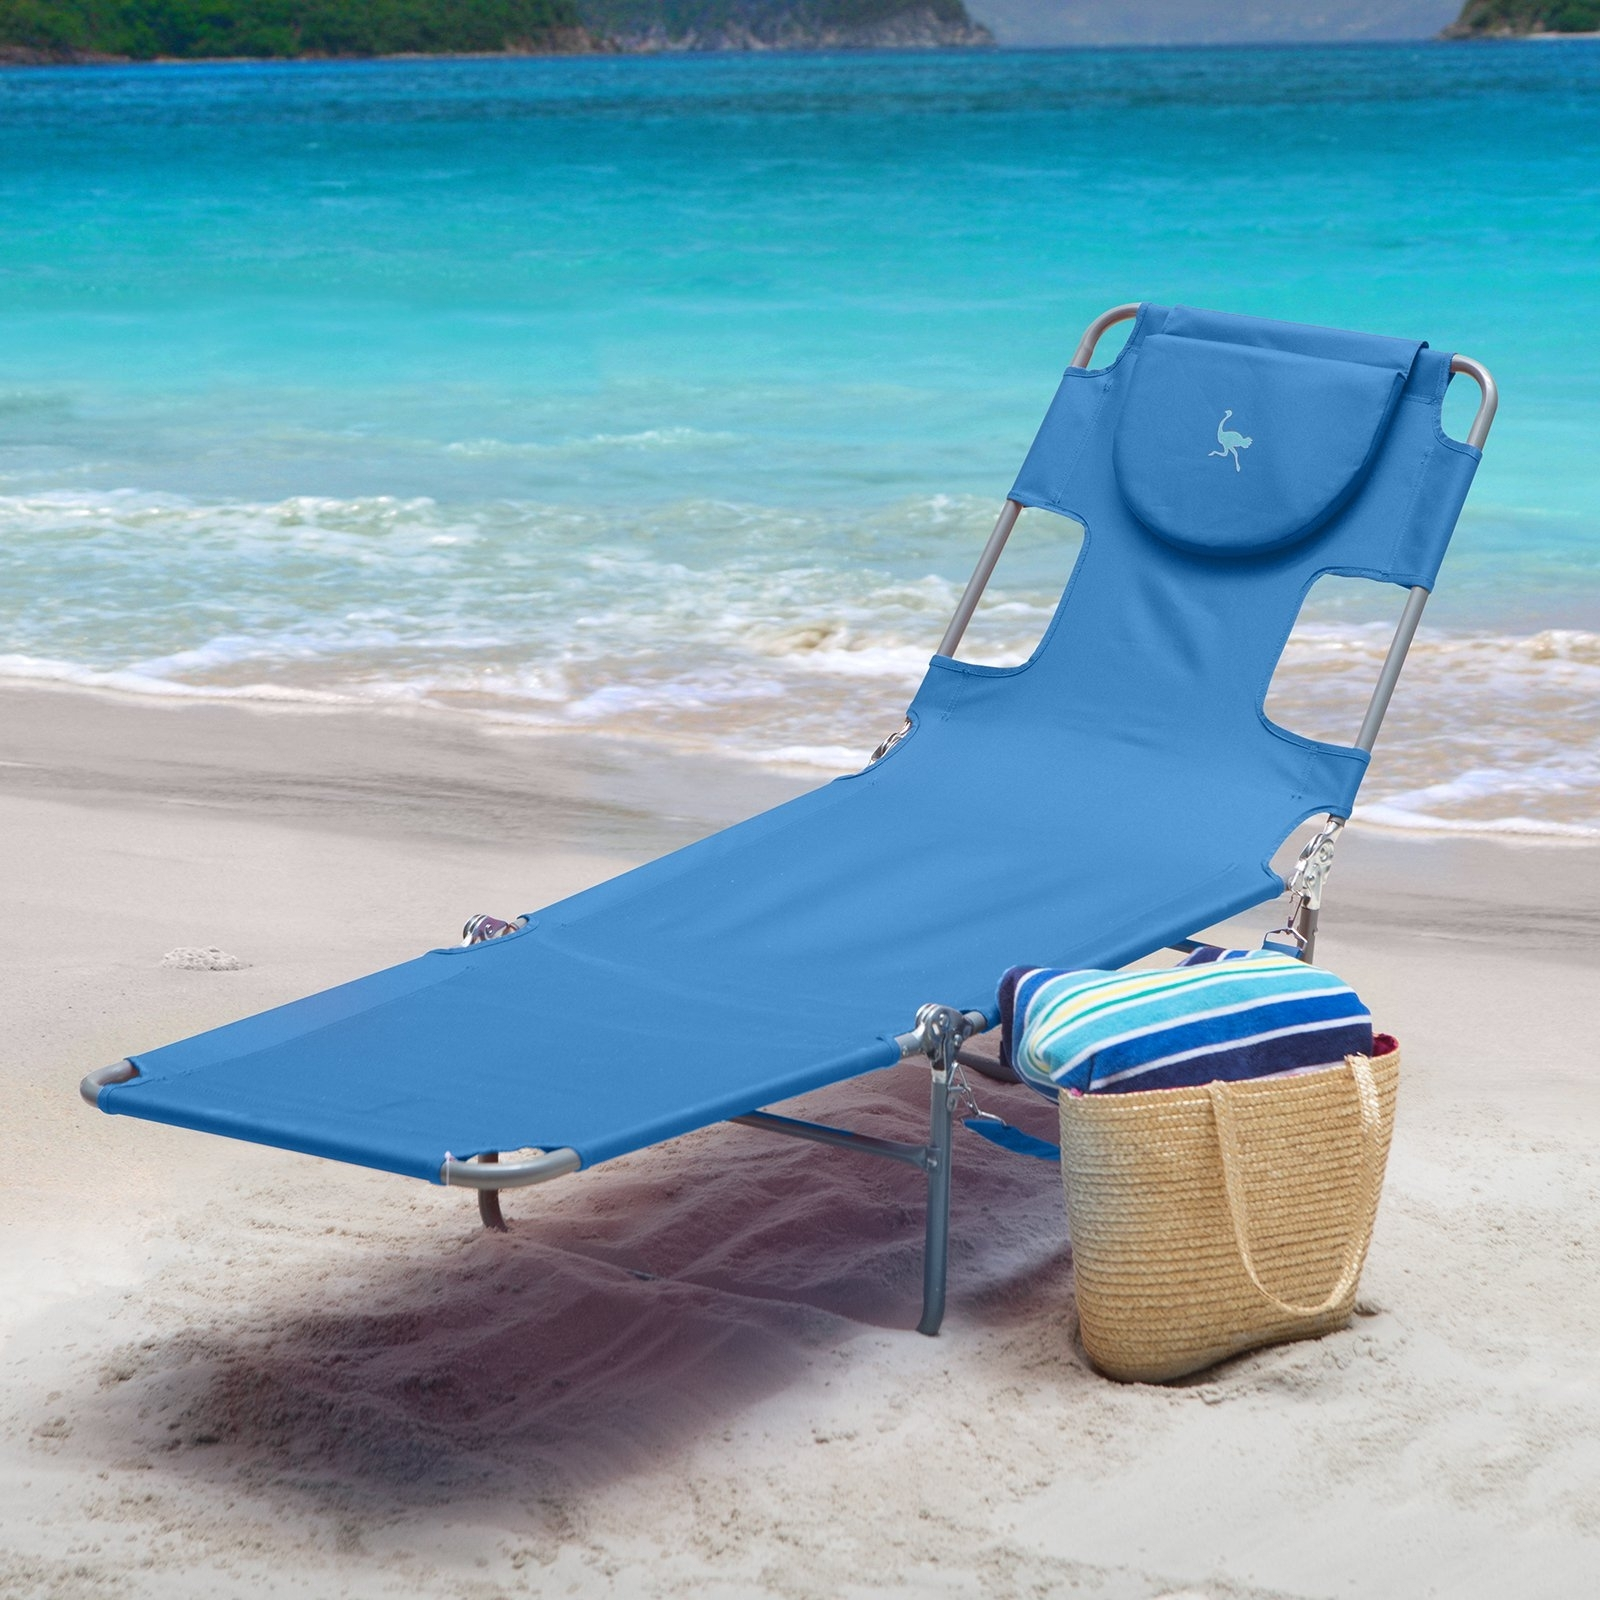 Ostrich Folding Chaise Lounge - Walmart intended for Well known Ostrich Chaise Lounges